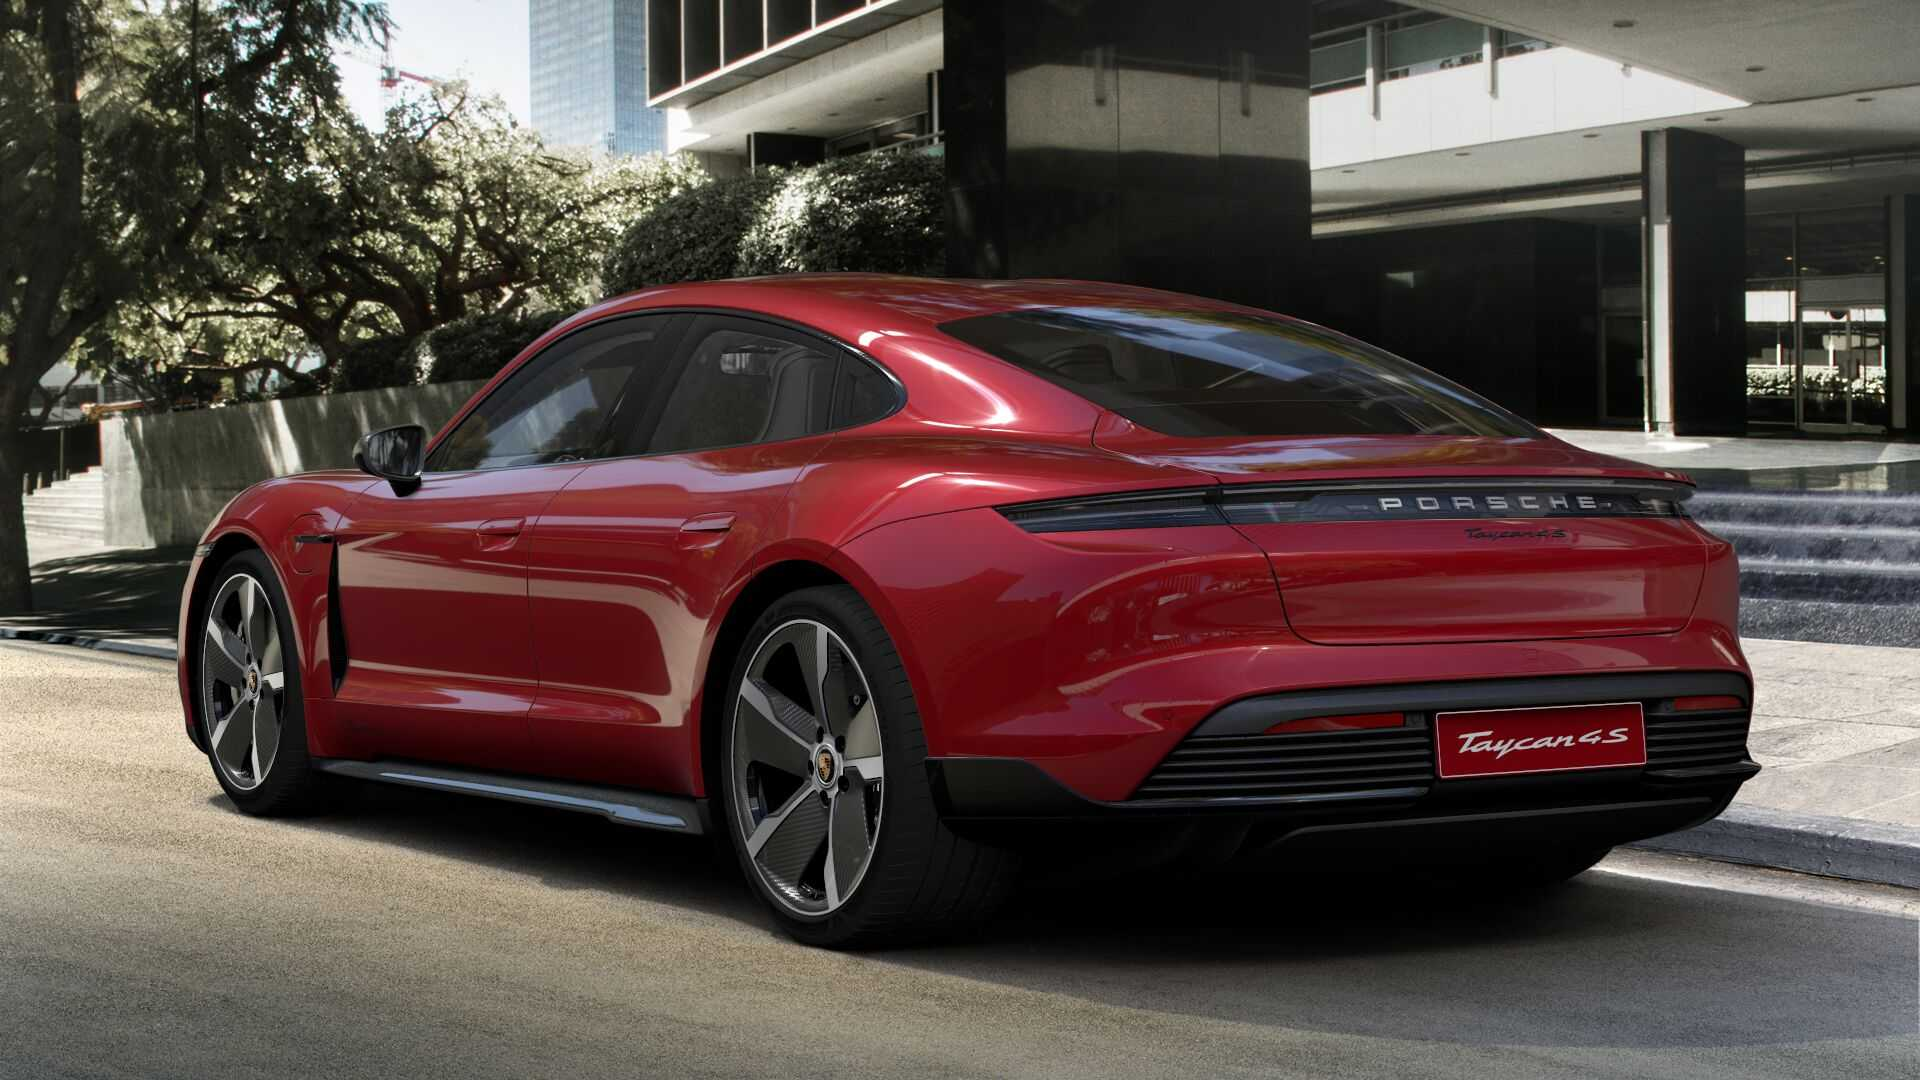 Most Expensive 2020 Porsche Taycan 4S Costs 195870 1920x1080